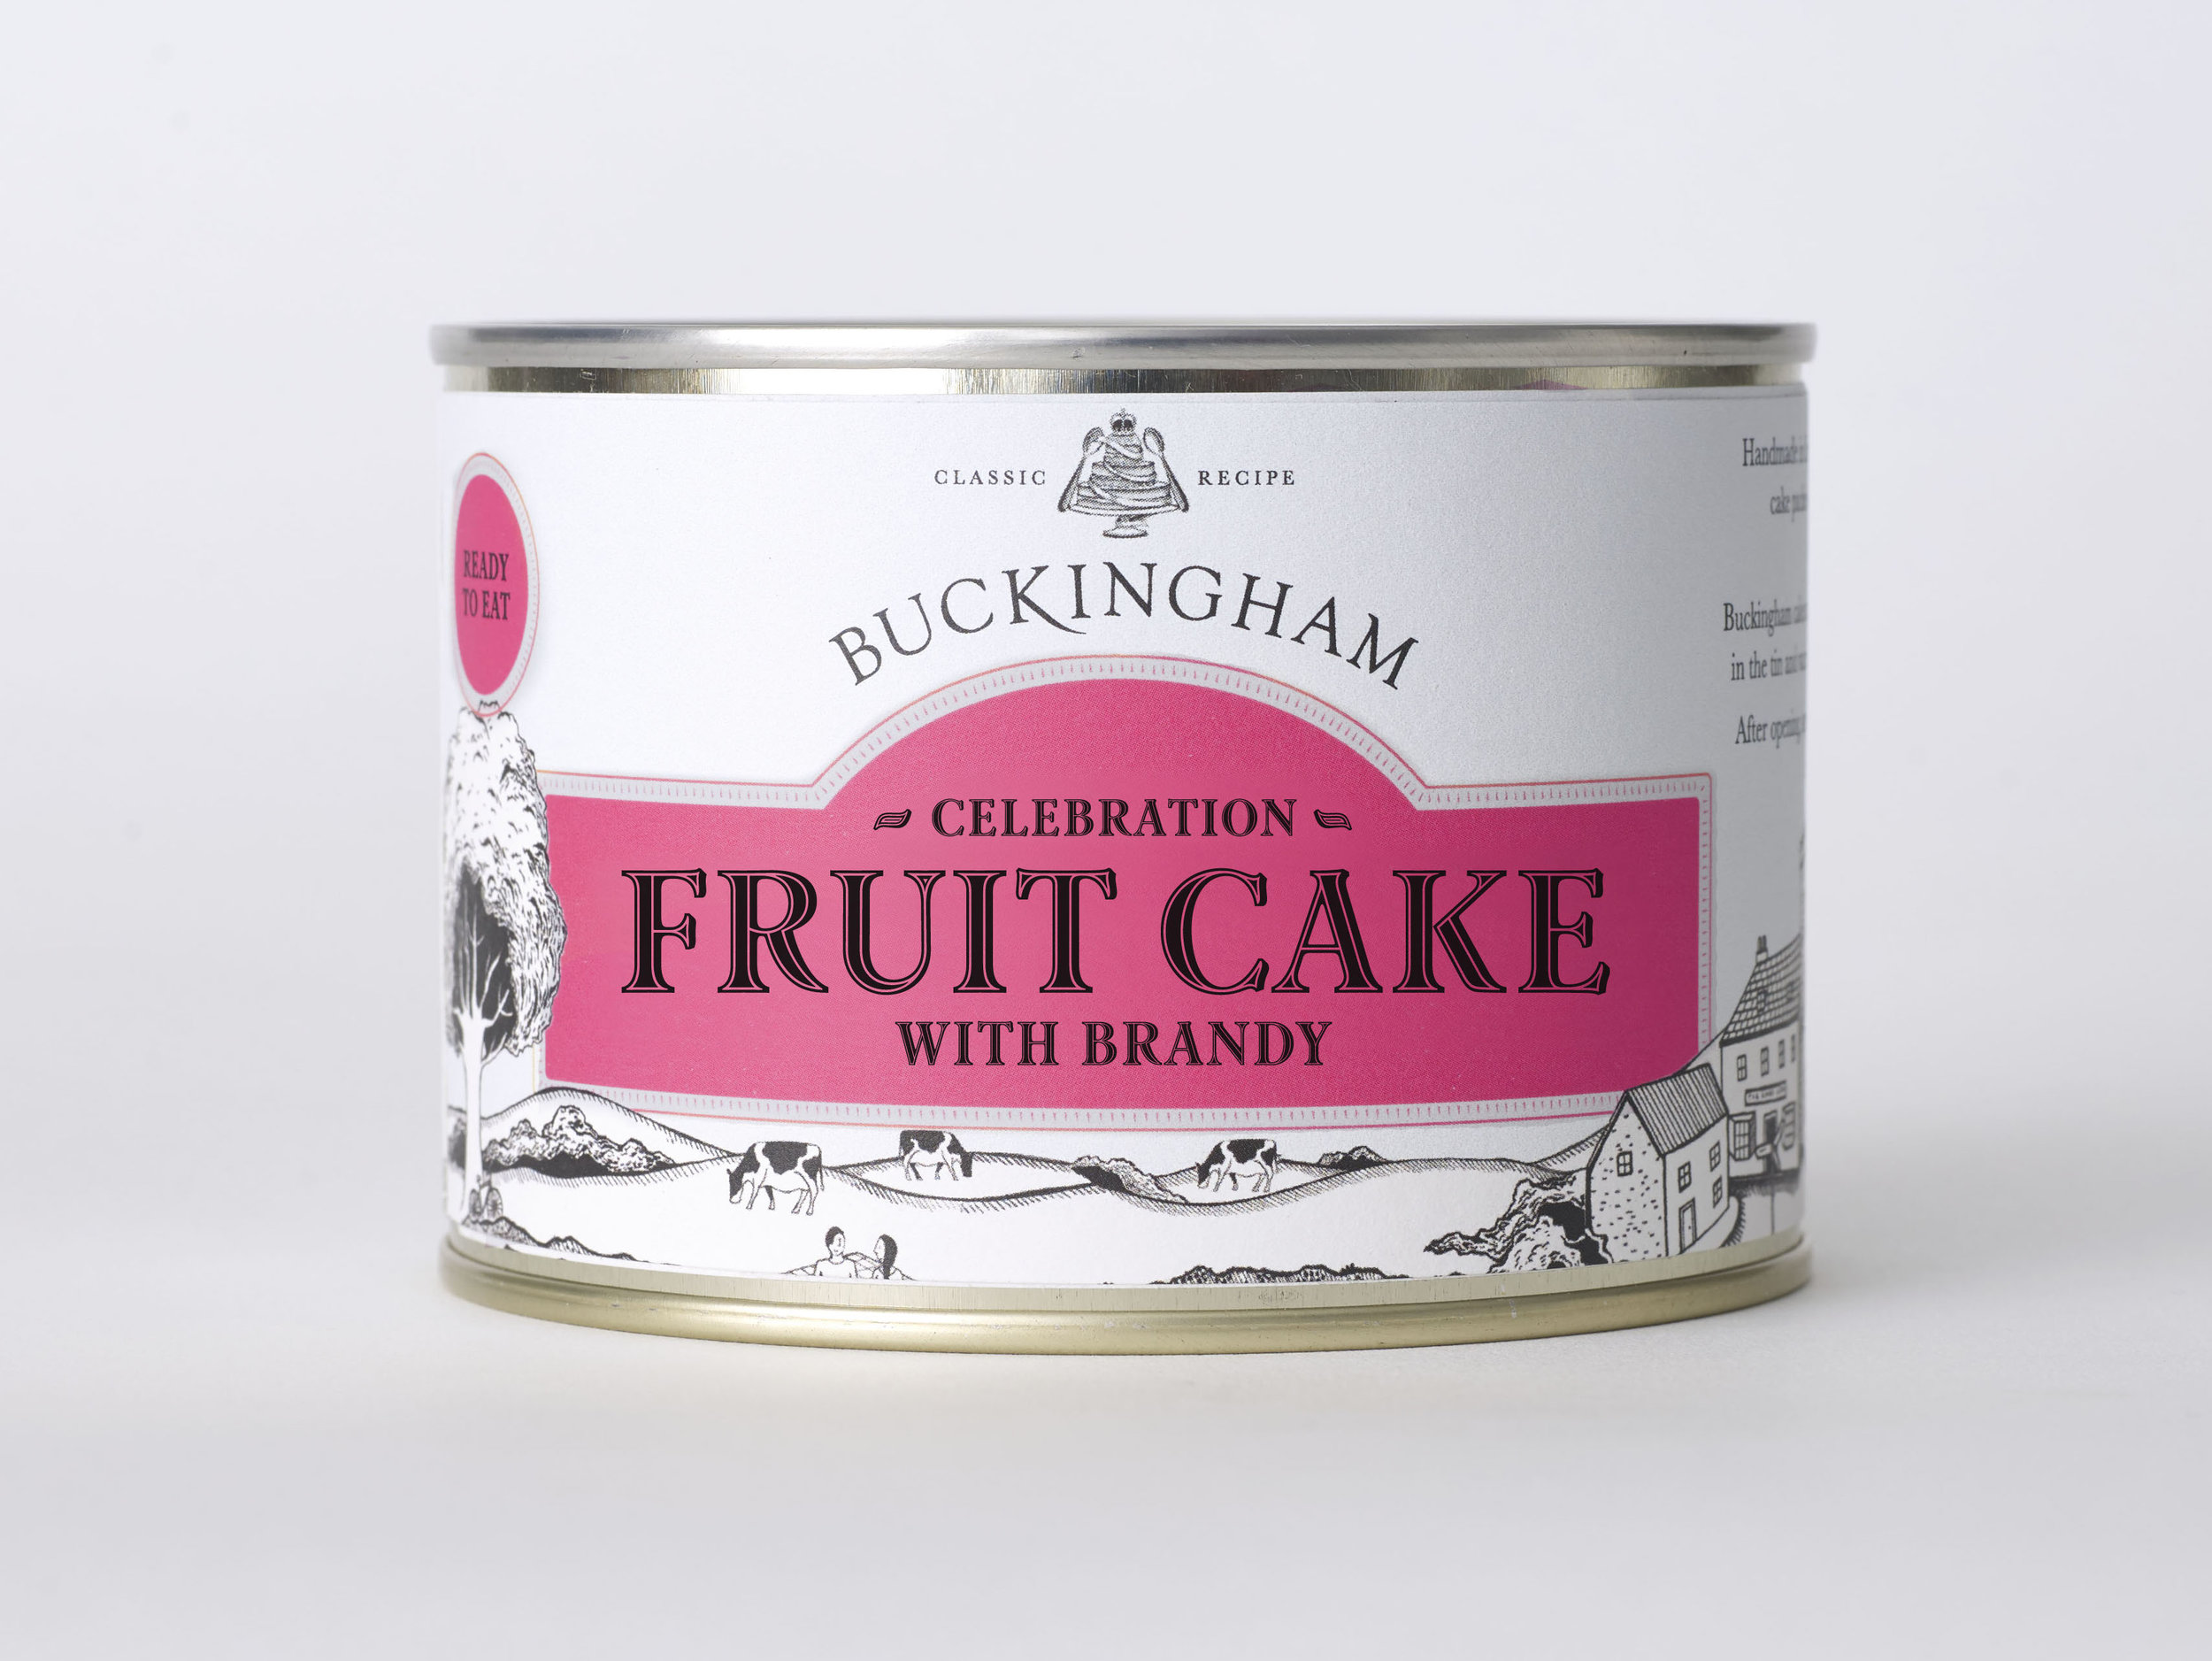 May 2018 - Our fruit cake with Scottish whisky is a firm favourite and we're frequently asked for versions with rum and also with brandy. We're starting with the brandy. Launched this month, a special edition of our classic celebration cake liberally laced with finest French brandy. What better way to celebrate in style!